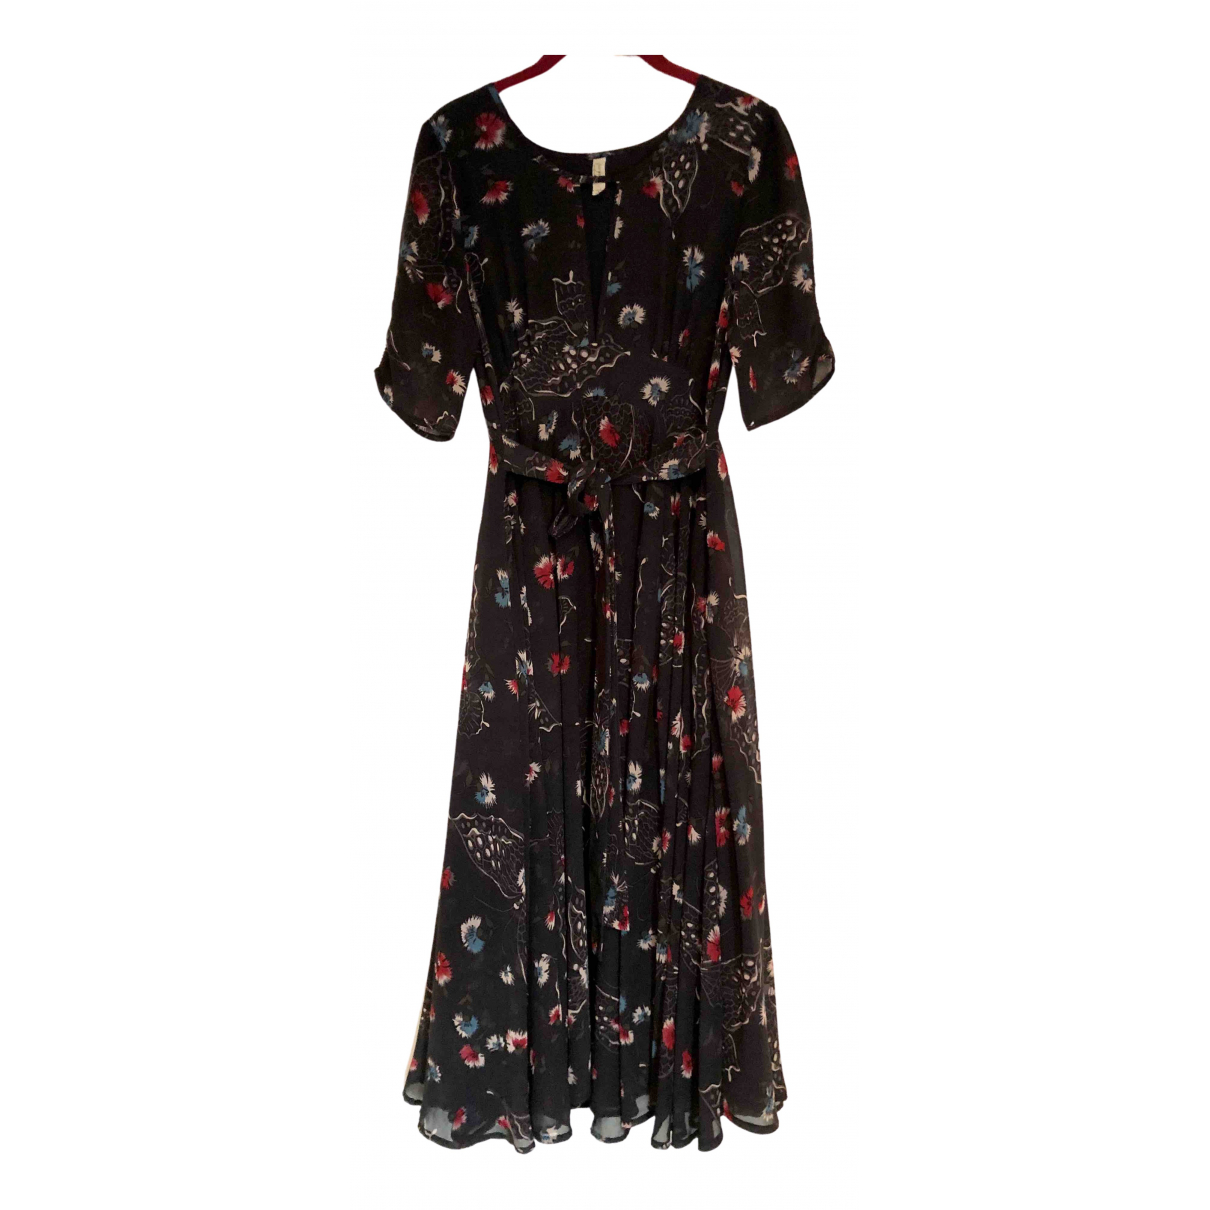 Free People \N Navy dress for Women 4 US